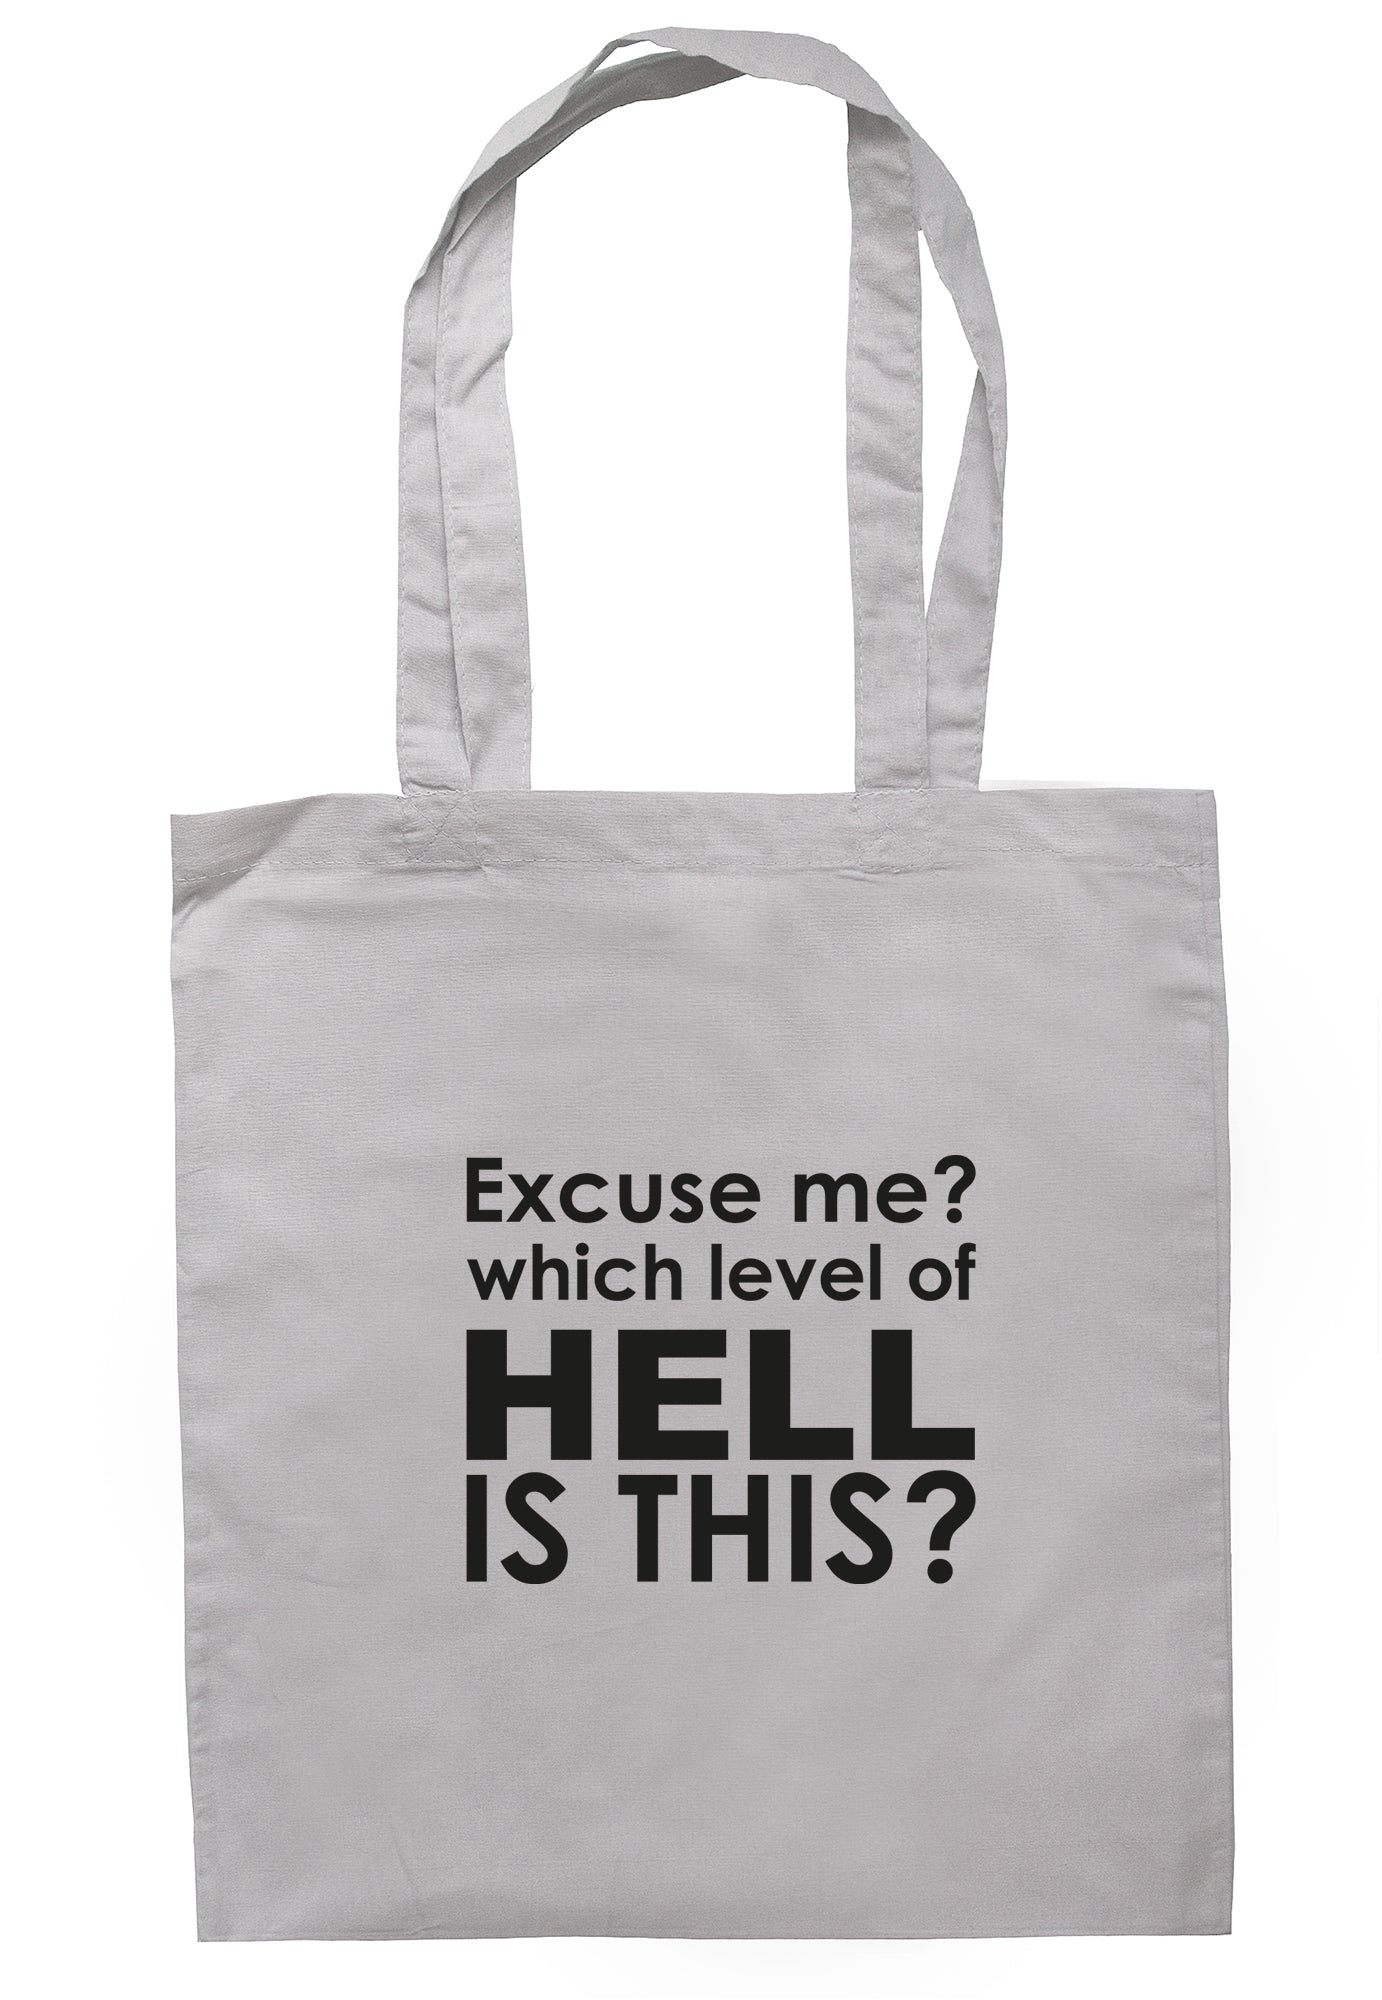 Excuse Me? Which Level Of Hell Is This? Tote Bag S1126 - Illustrated Identity Ltd.